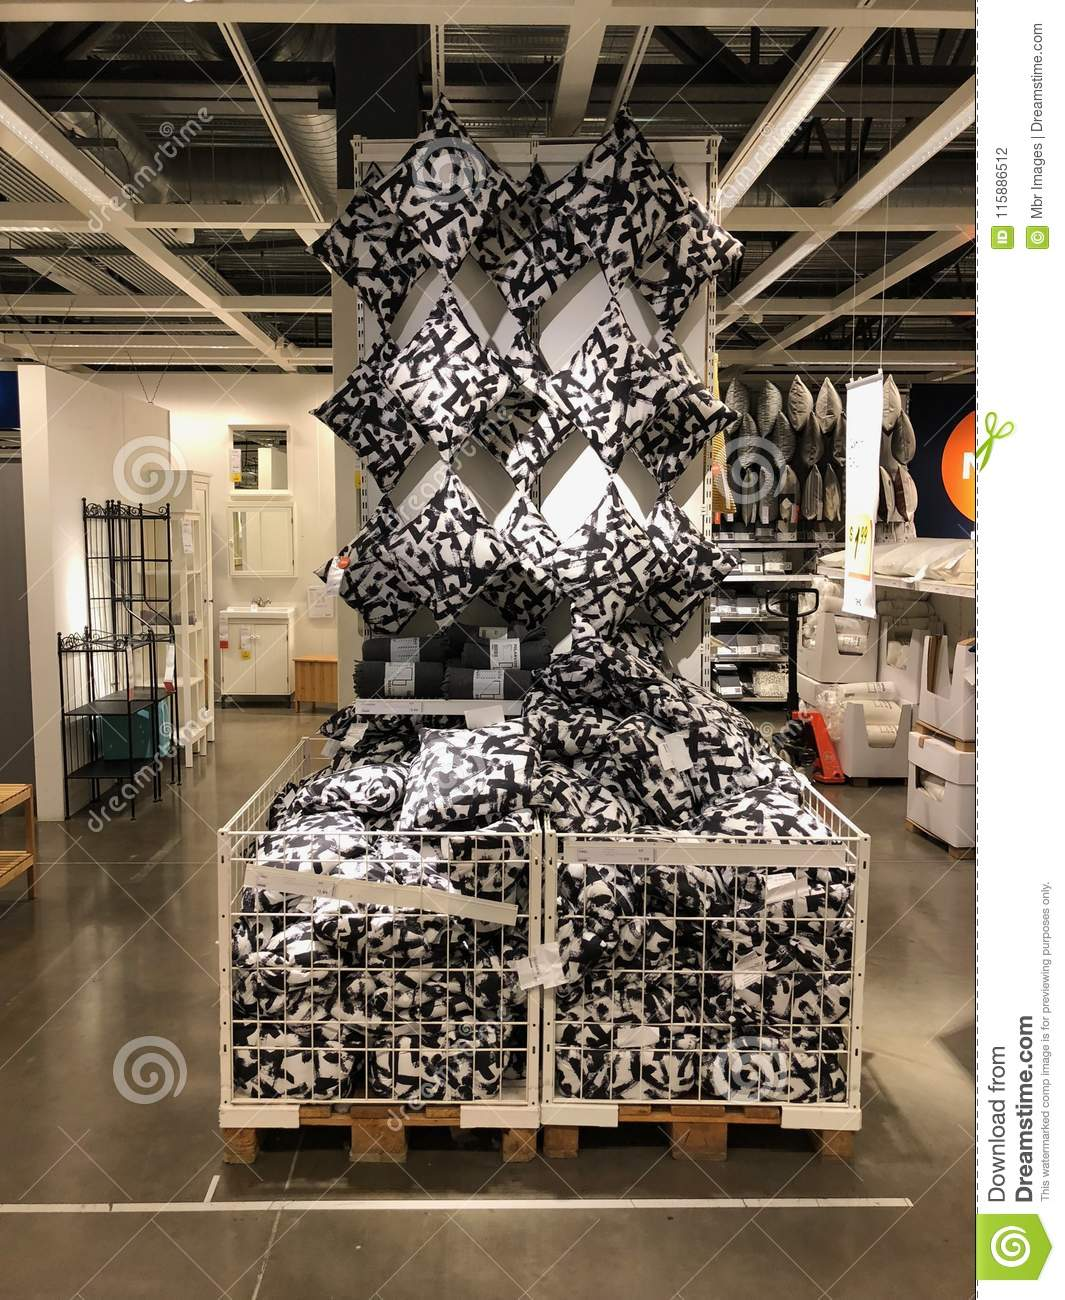 Ikea Store Editorial Photography Image Of Furnishings 115886512